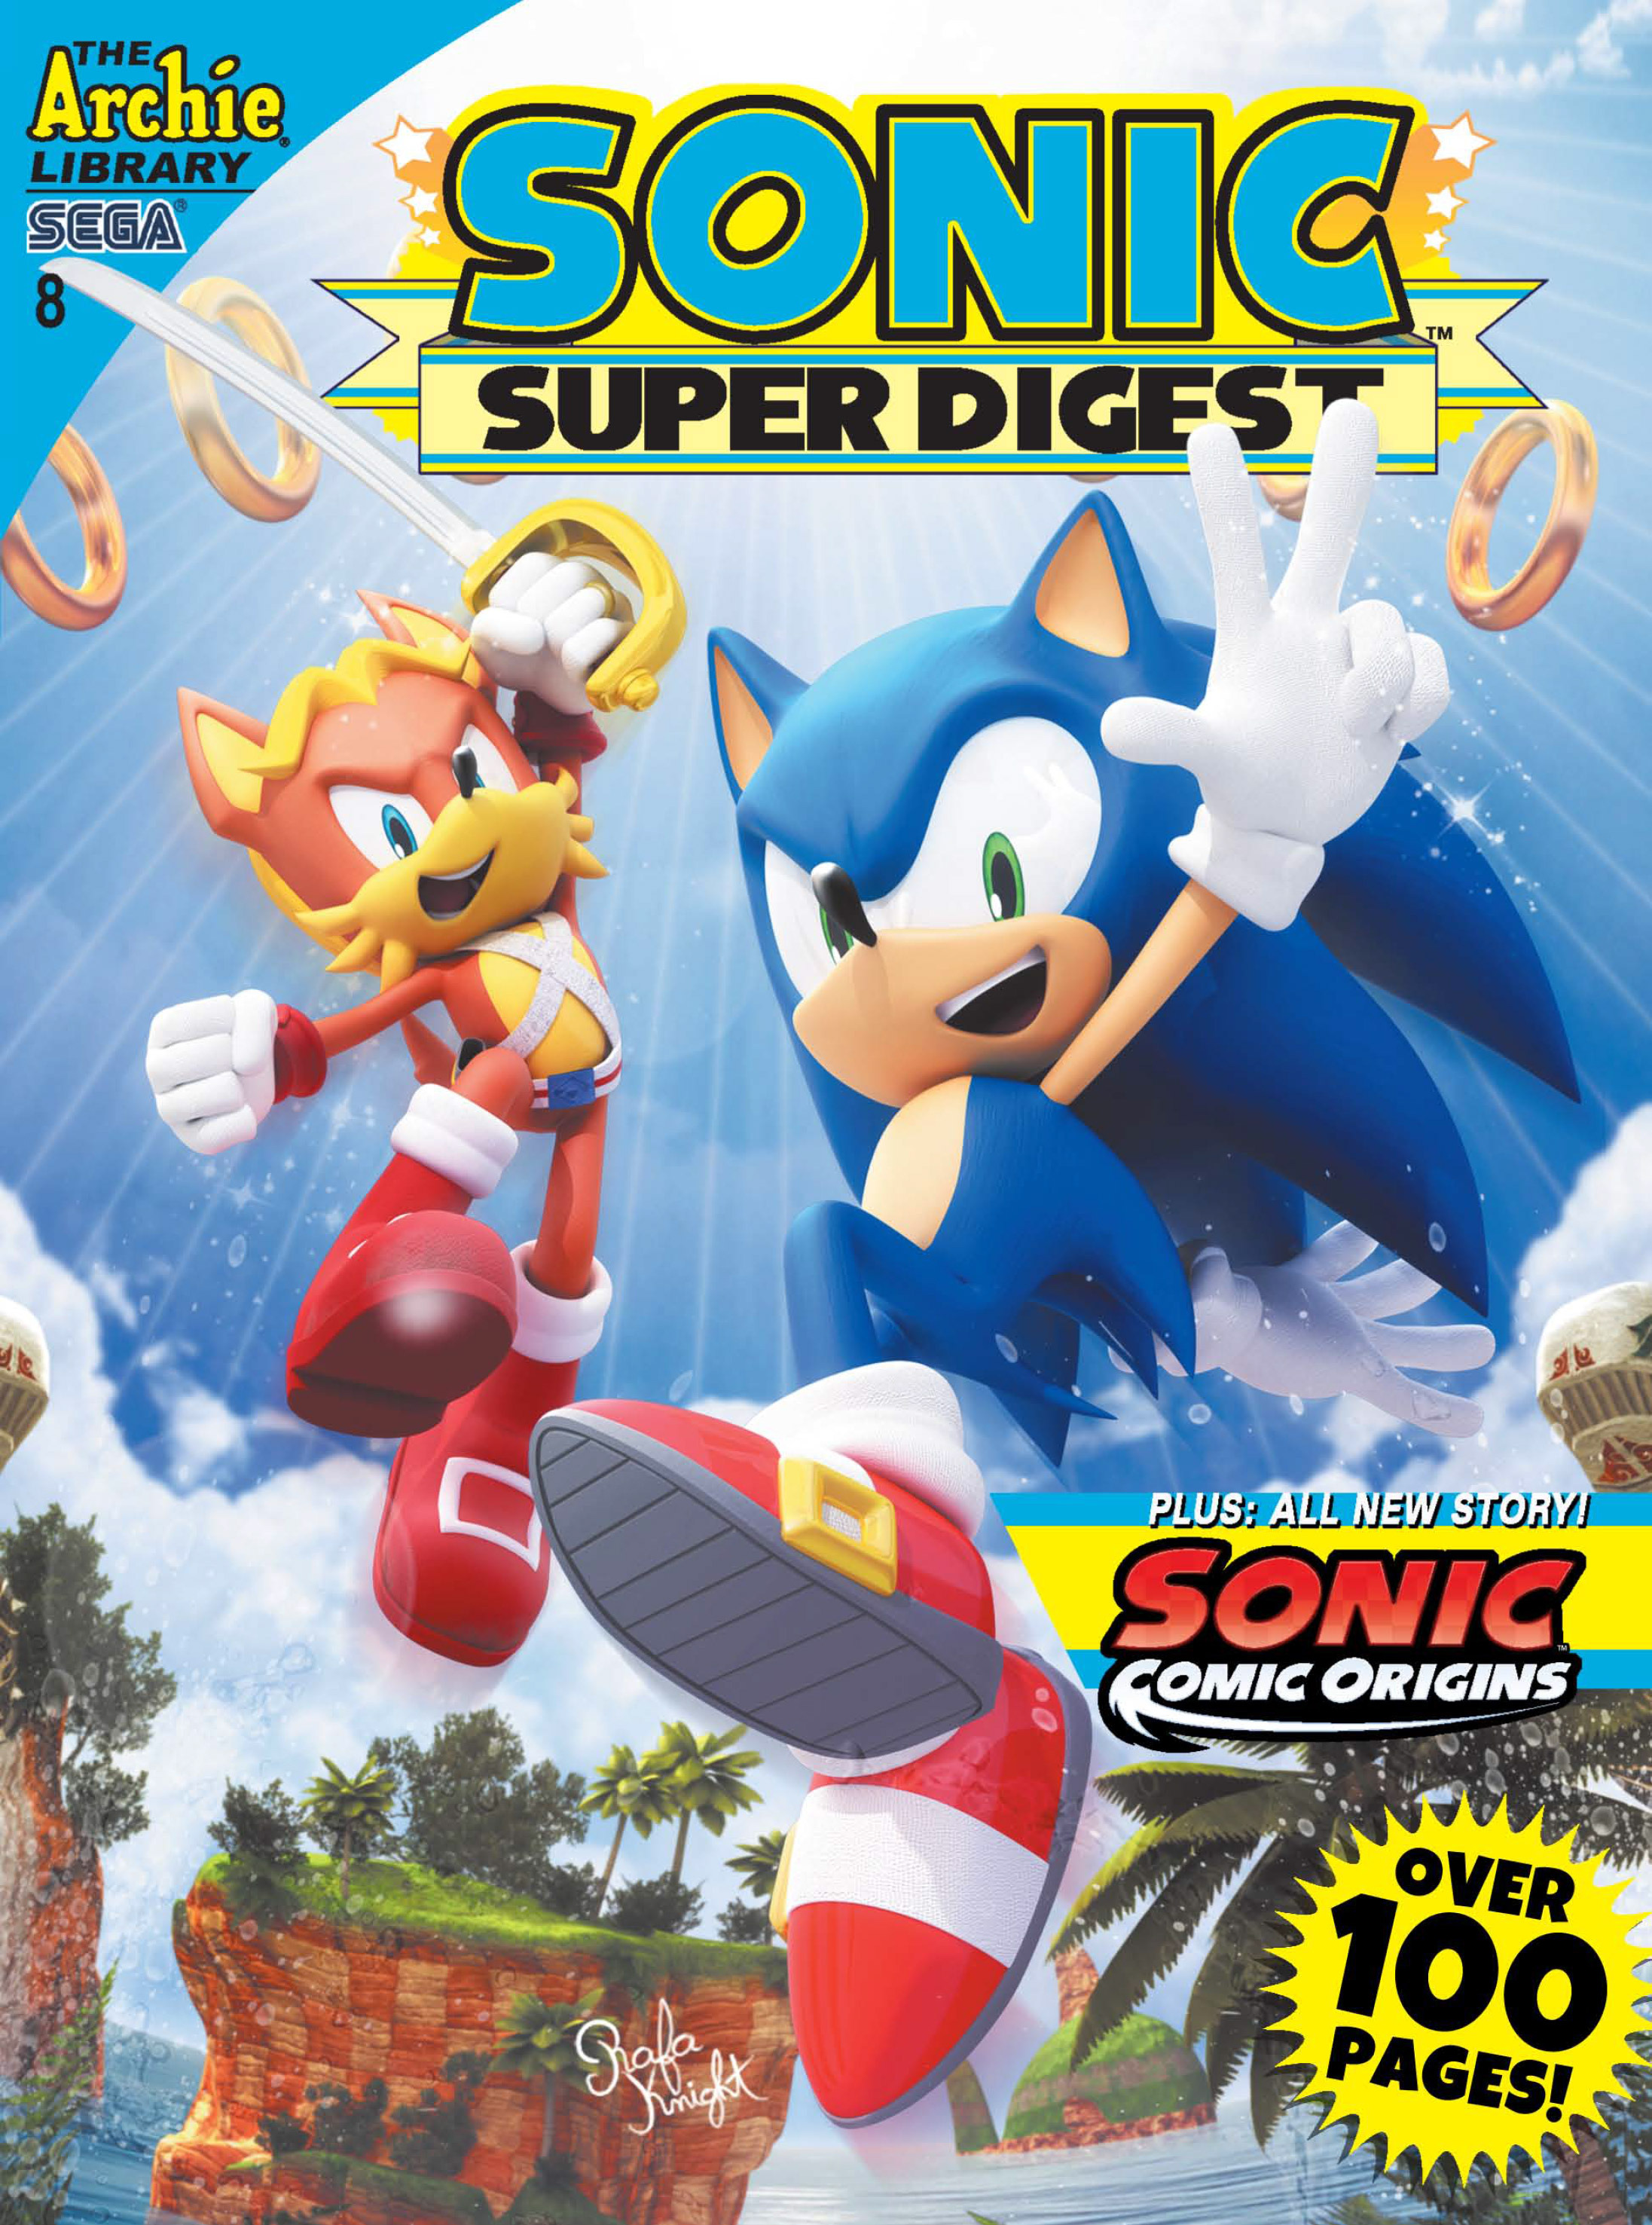 Archie Sonic Super Digest Issue 8 Sonic News Network